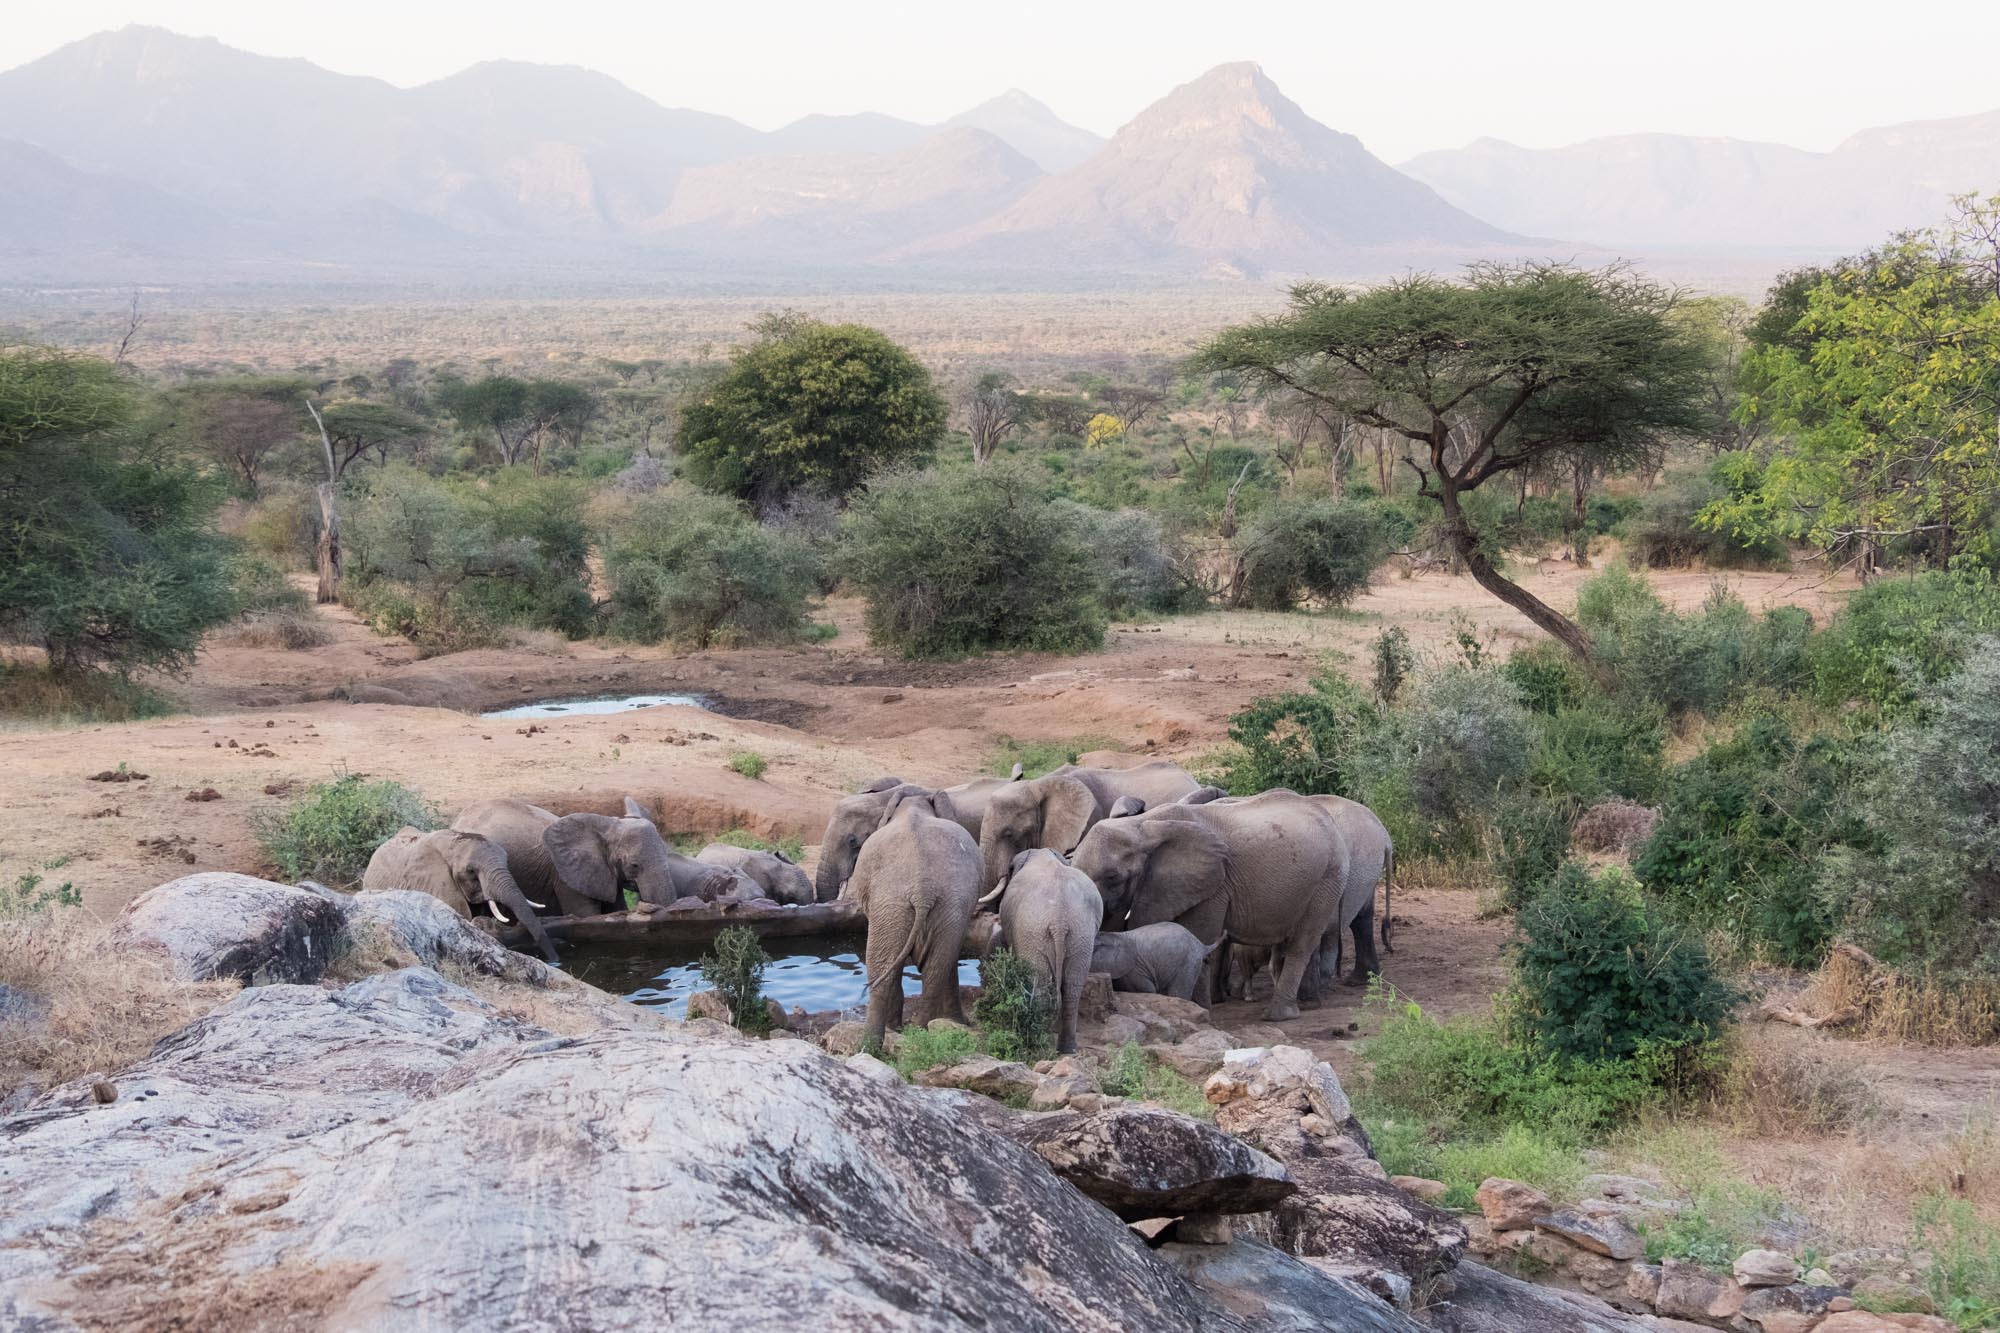 elephant-herd-well-sarara-northern-kenya-2018-01-08.jpg